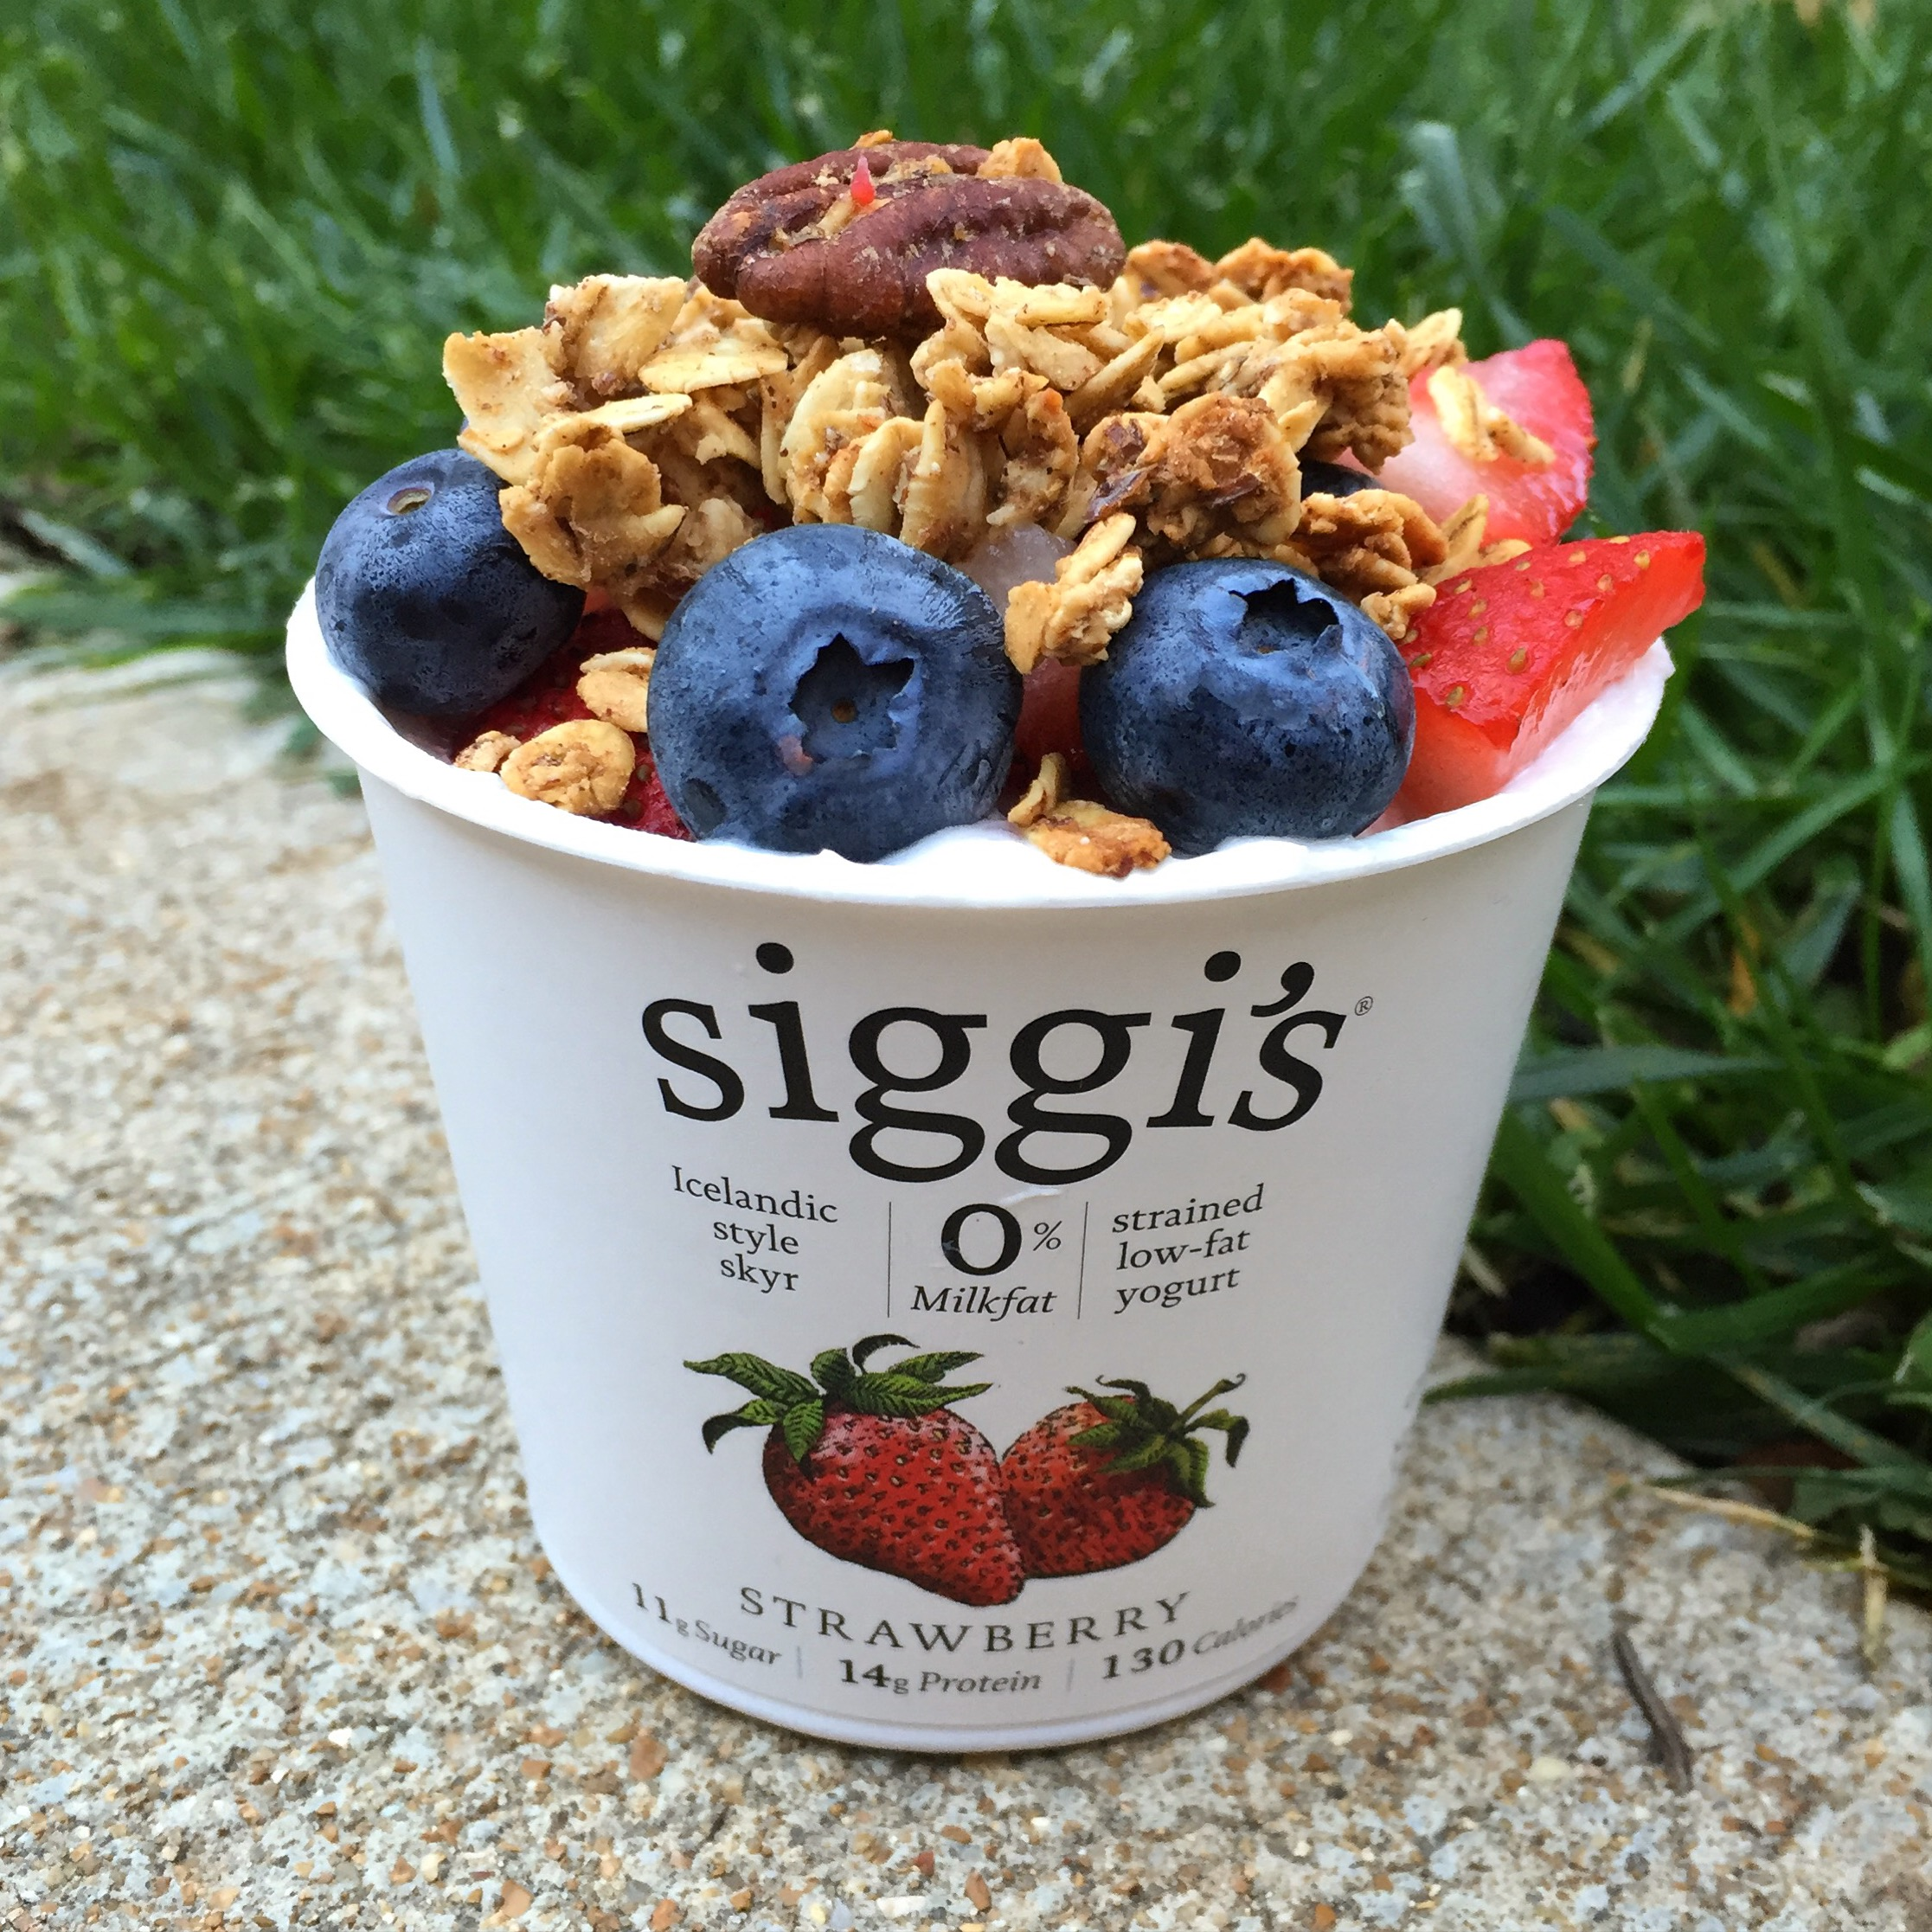 Siggi's is one of my favorite brands. High Protein, High deliciousness, but lower sugar than a lot of flavored yogurts. Along with berries, I topped this with my homemade banana bread granola, which is also one of my regular items I make because my whole family loves it, and it is SO ADDICTING.